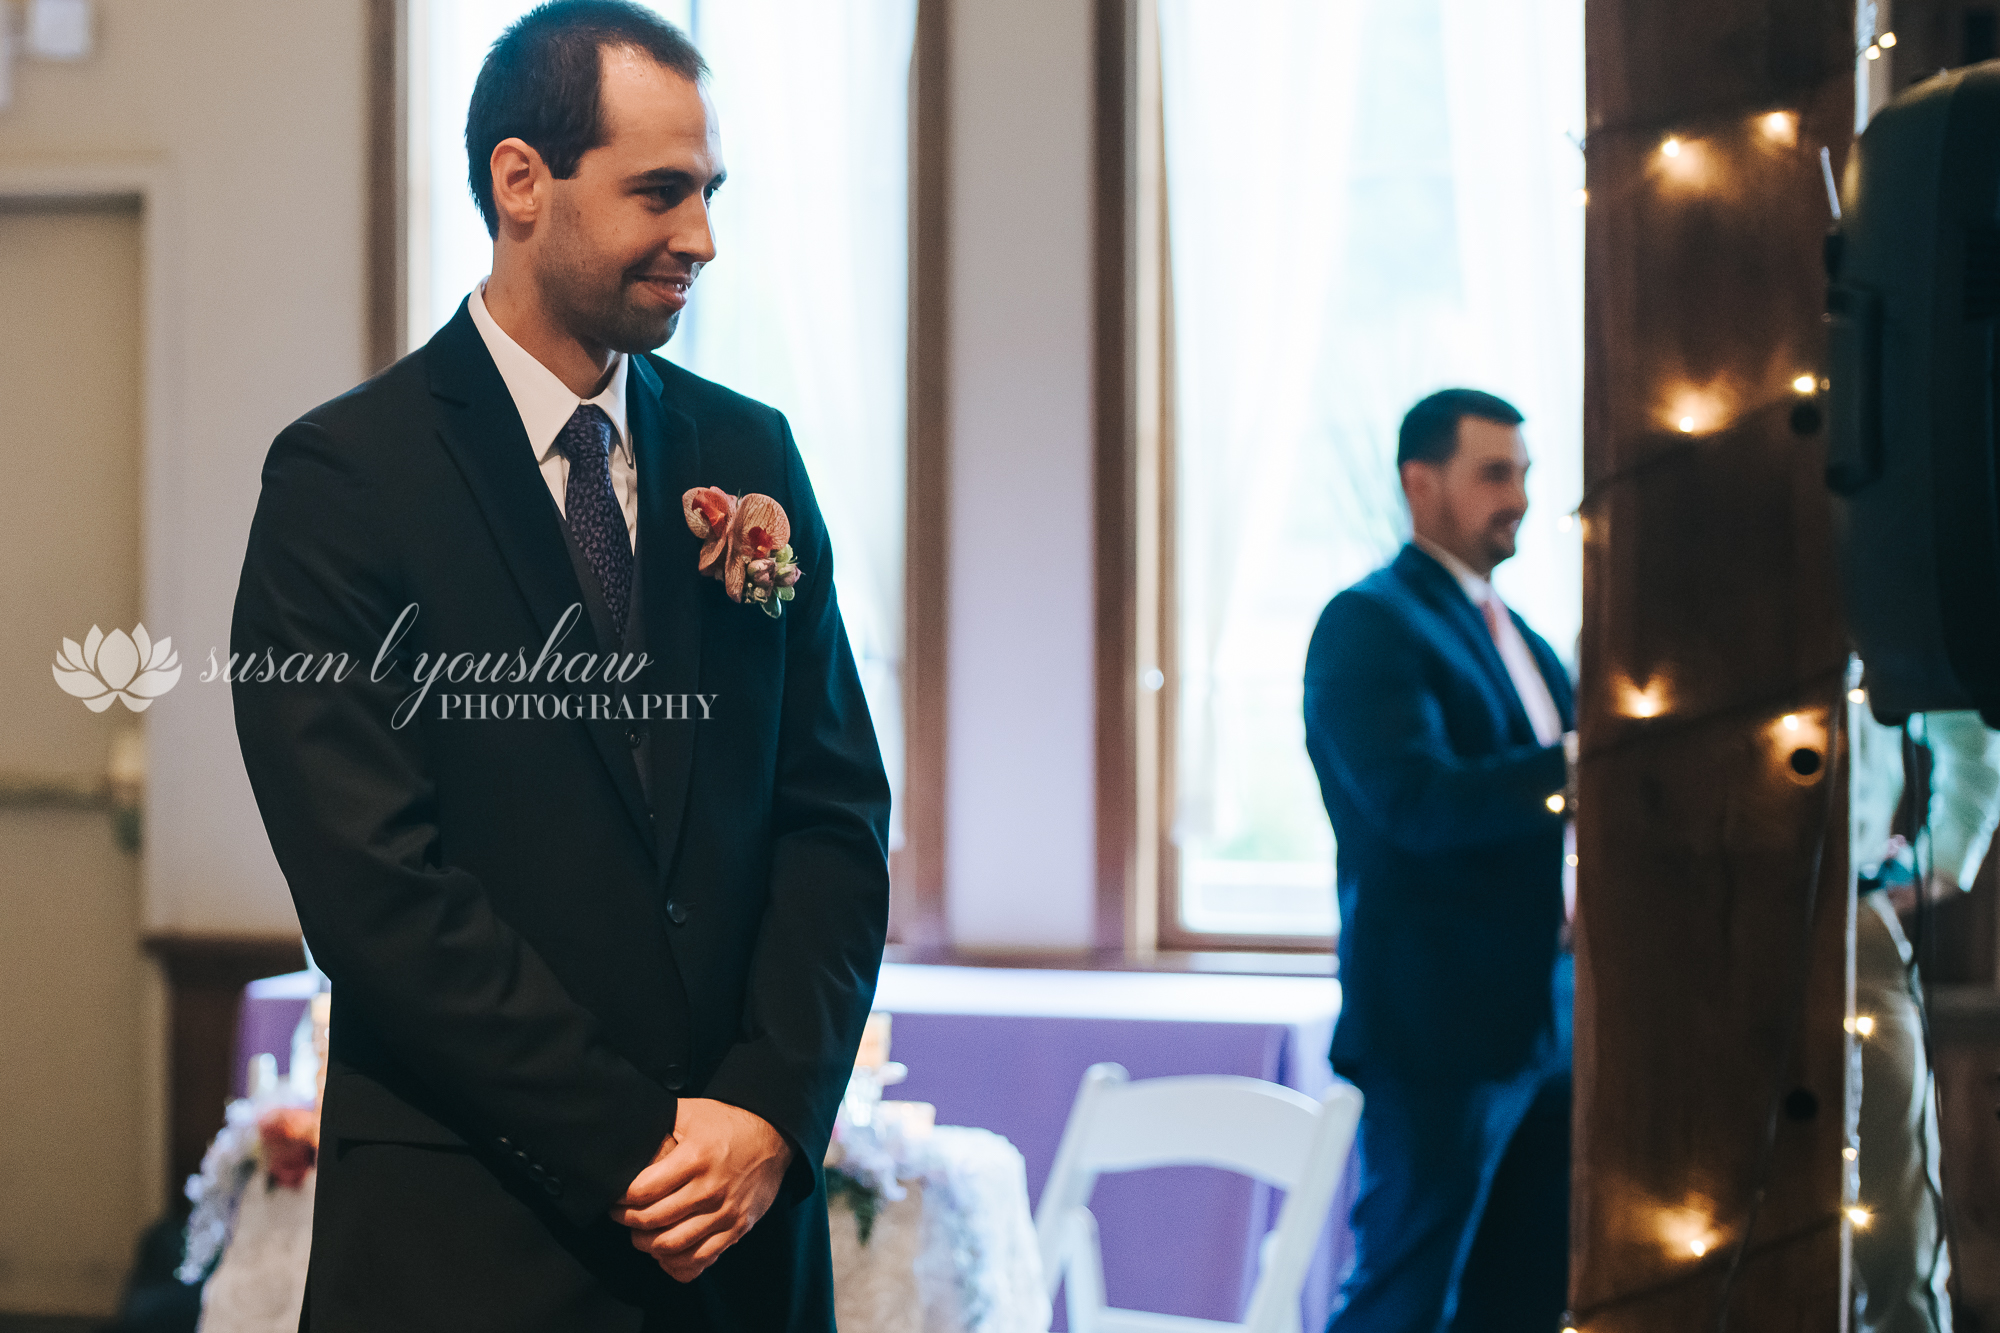 Adena and  Erik Wedding 05-17-2019 SLY Photography-85.jpg